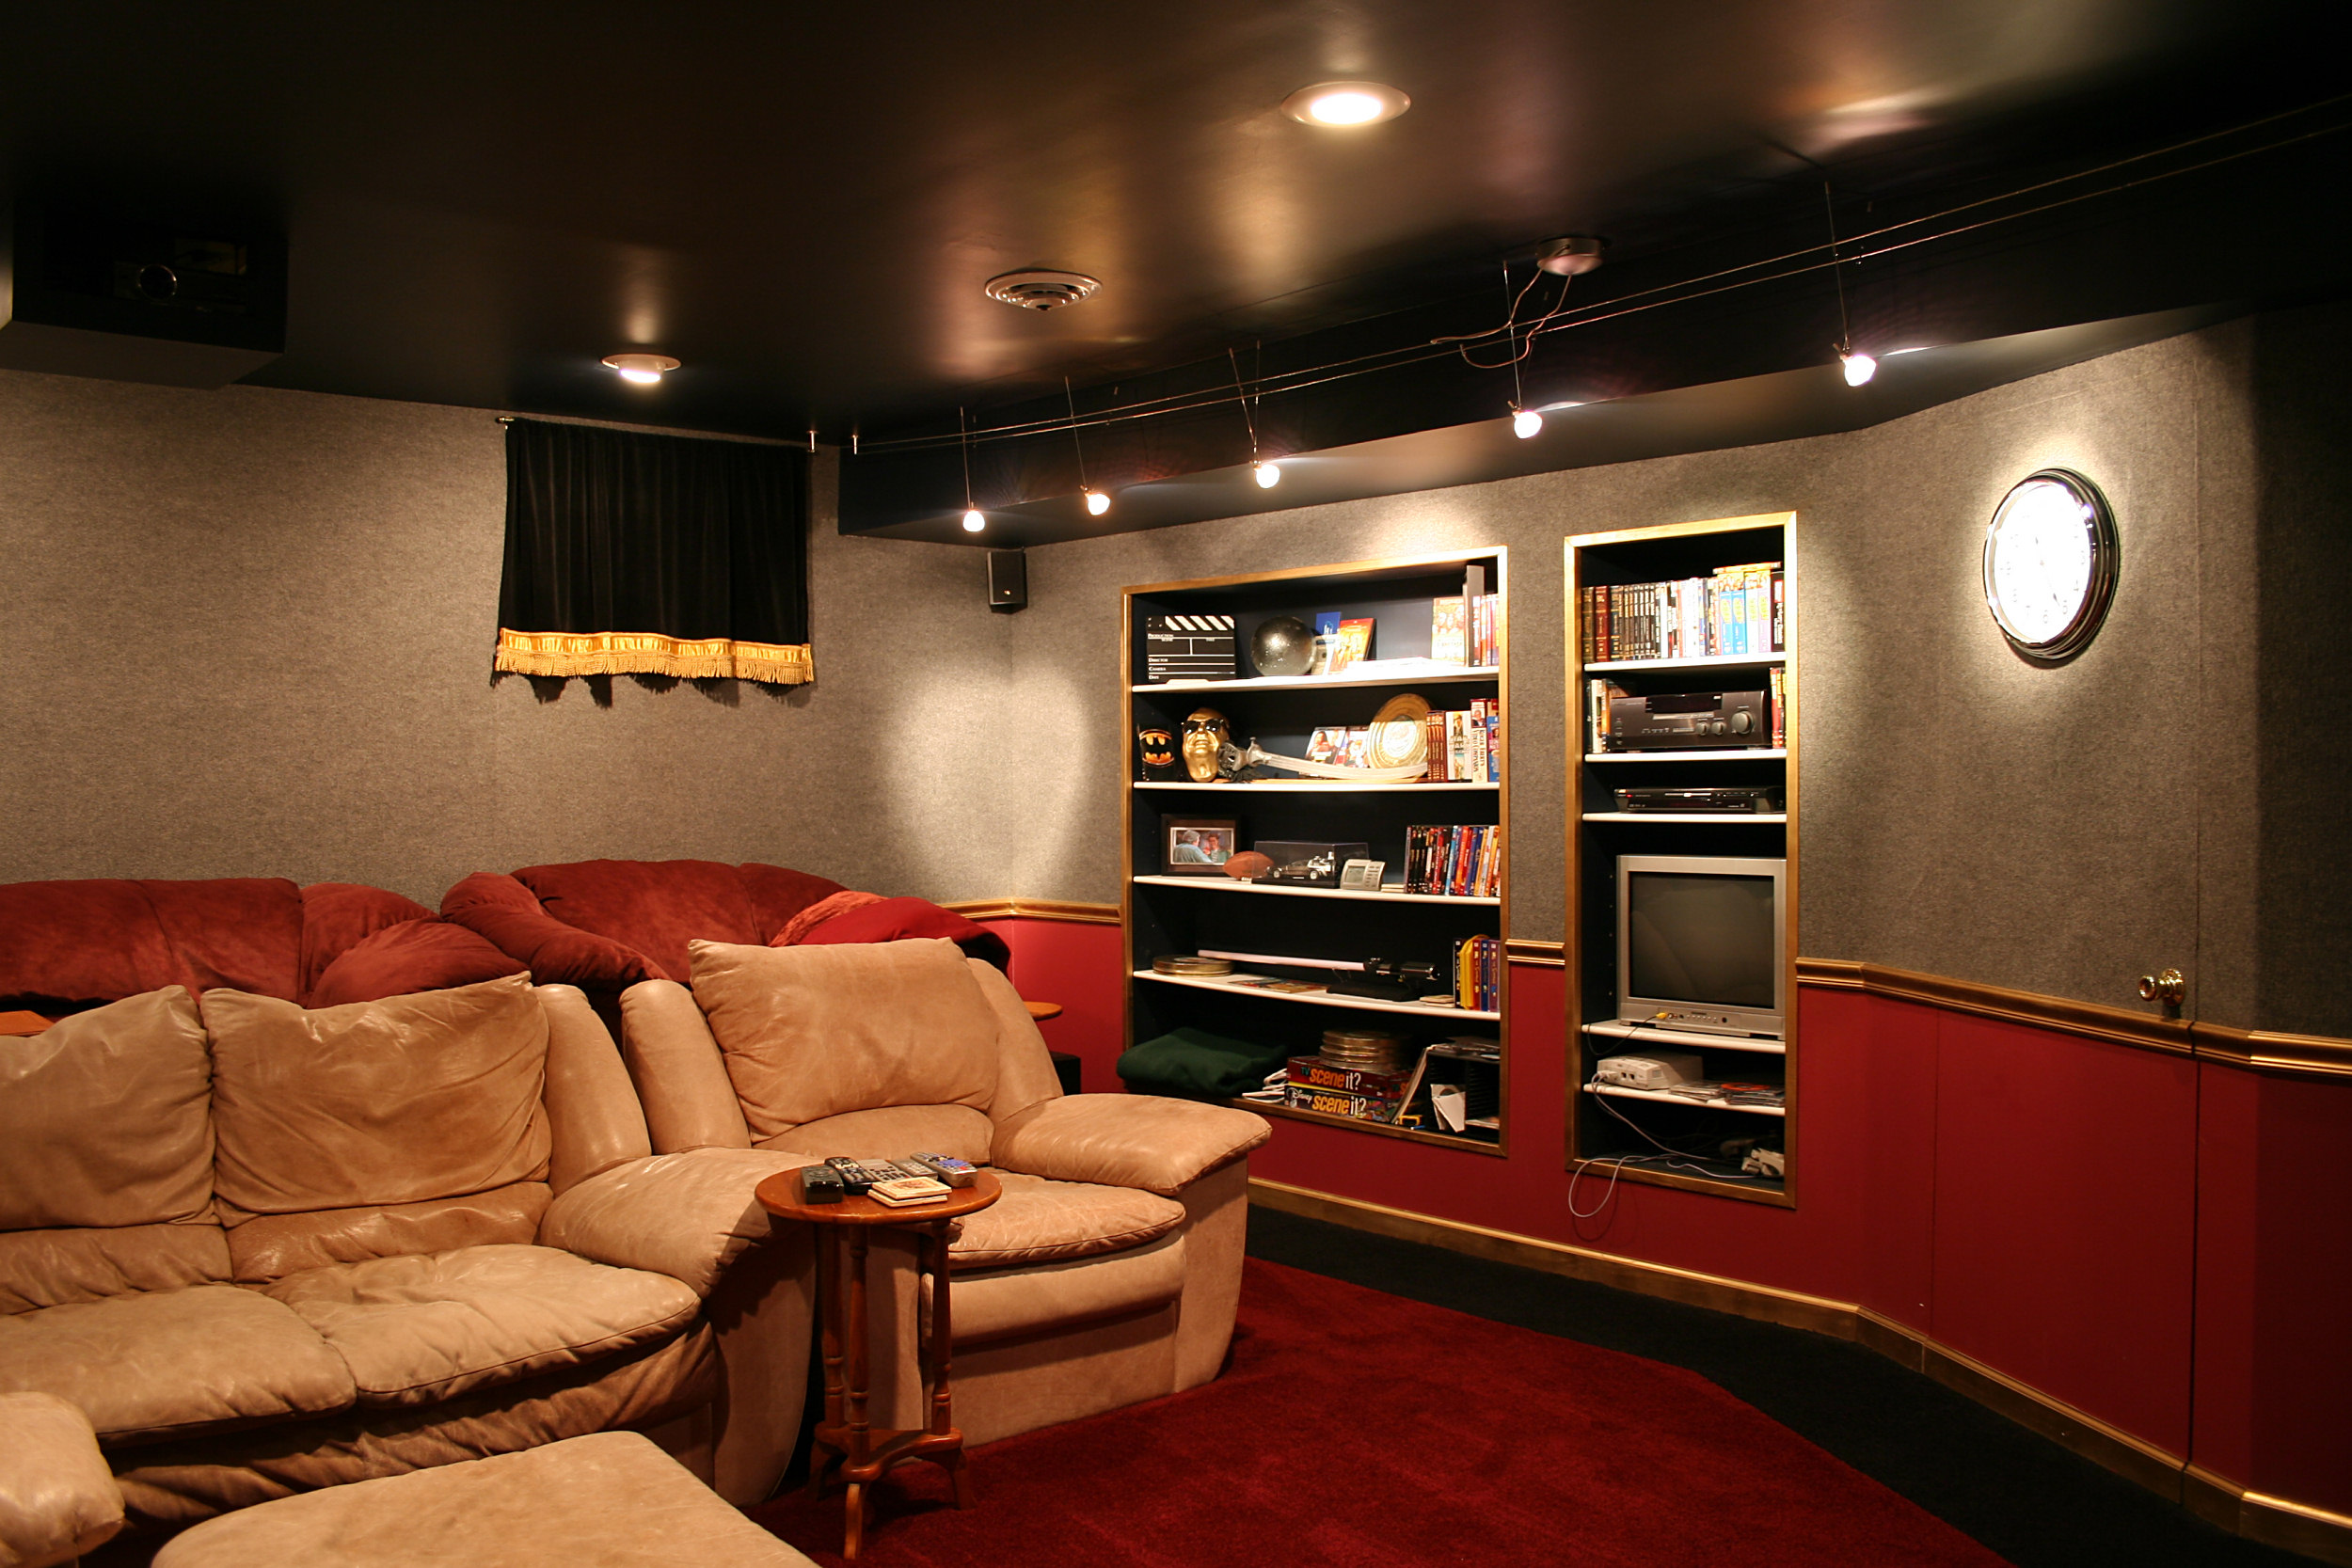 Tuesday s tips convert an attic into a home theater Home movie theater